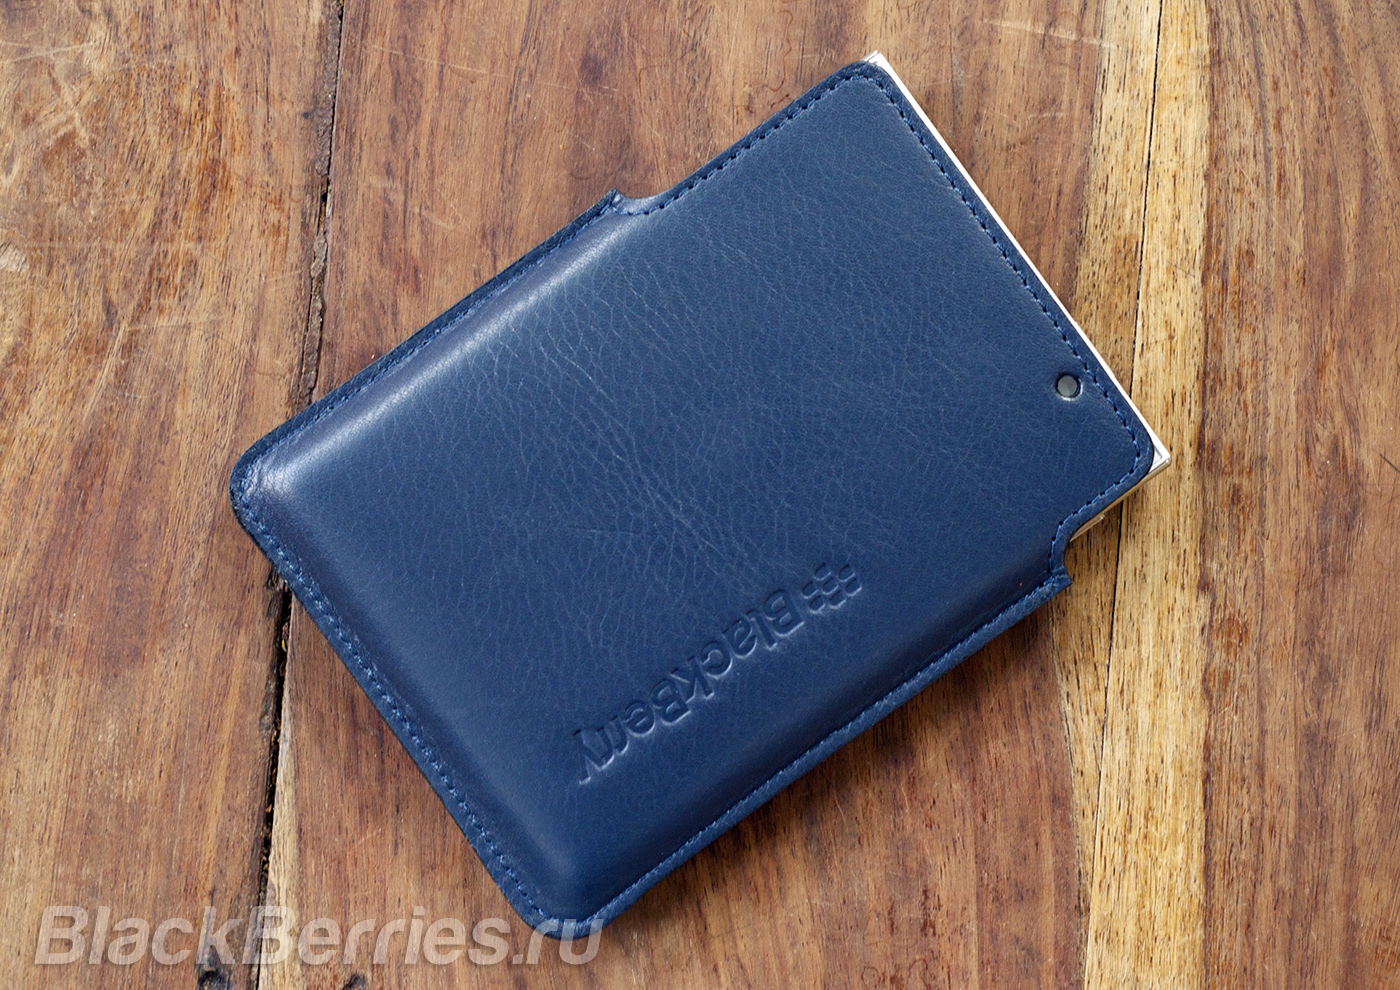 BlackBerry-Passport-Case-03